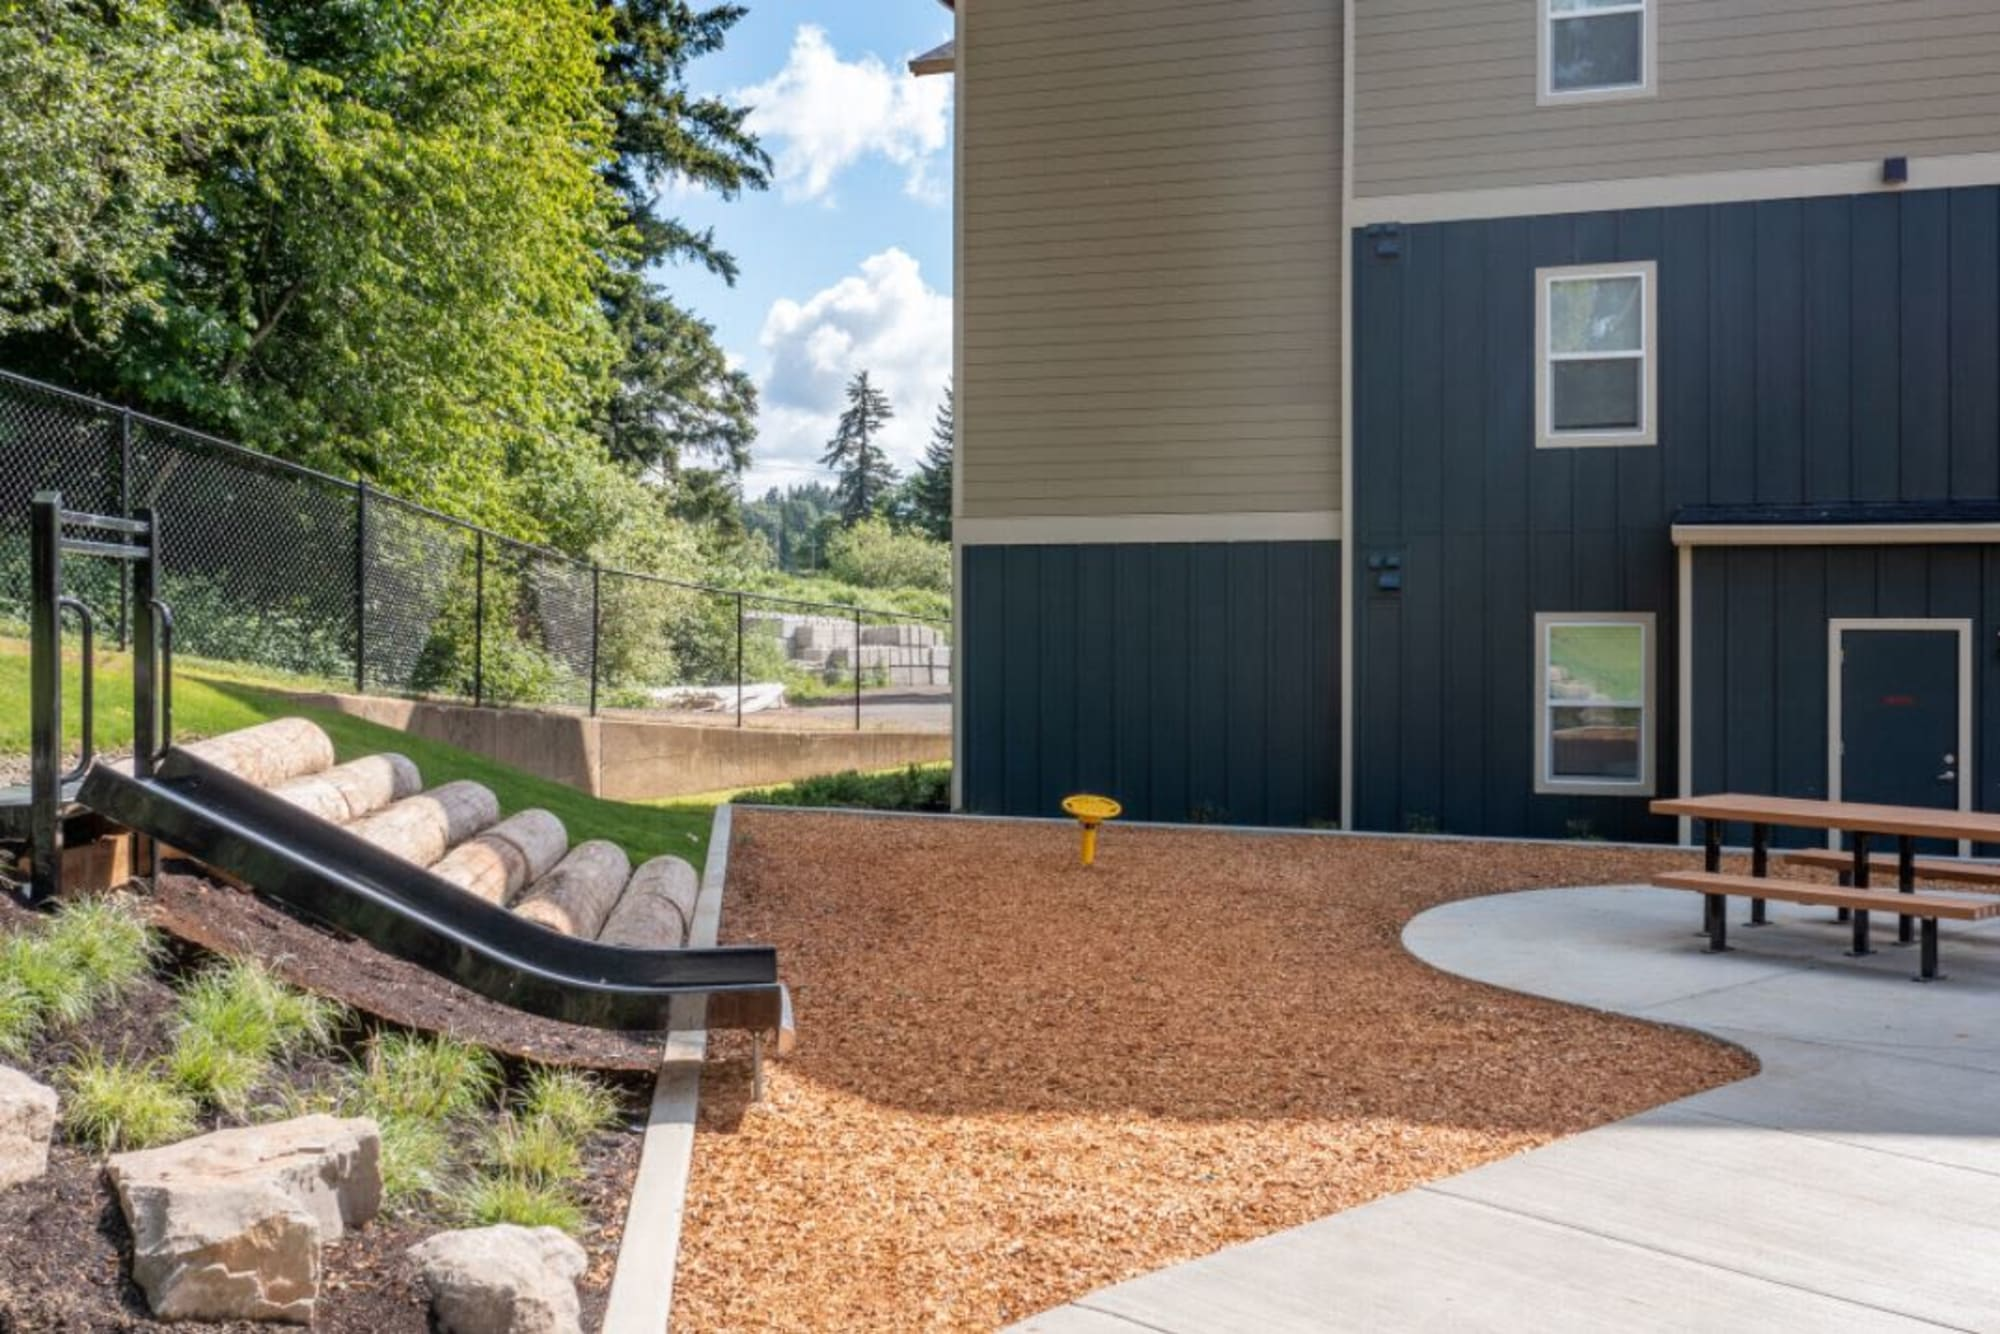 A slide and picnic table in a communal outdoors area at Haven Hills in Vancouver, Washington